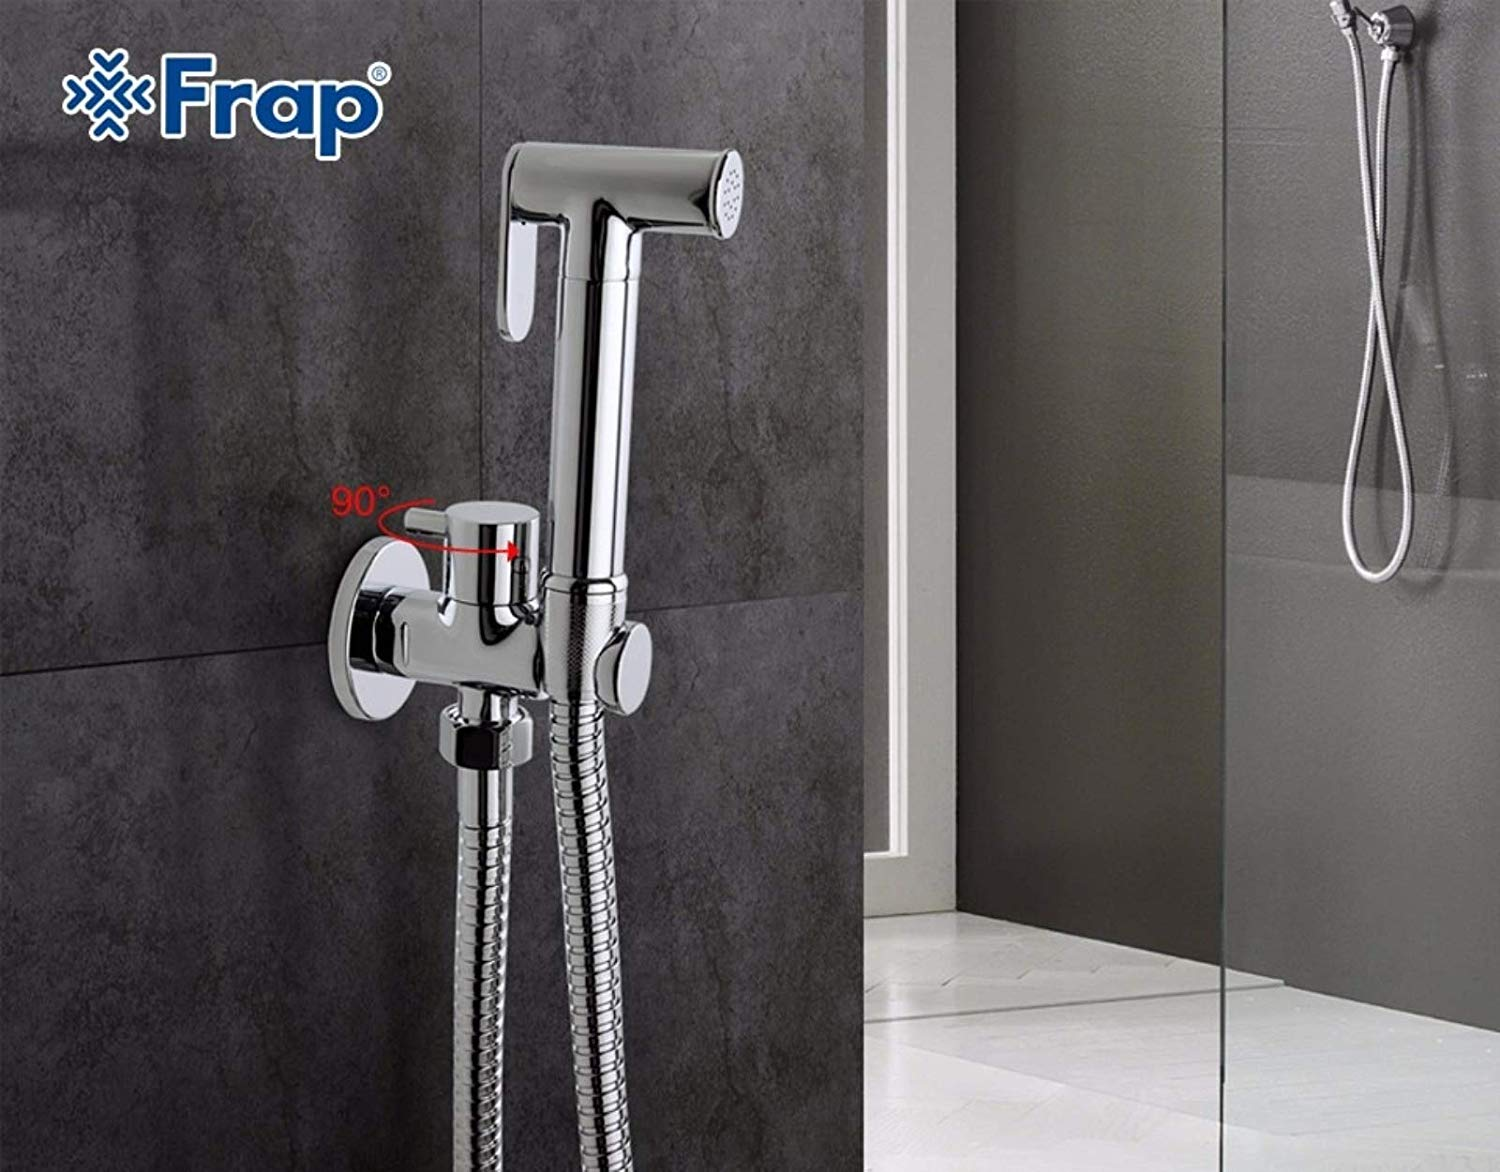 Cheap Single Tap Shower Adapter Find Single Tap Shower